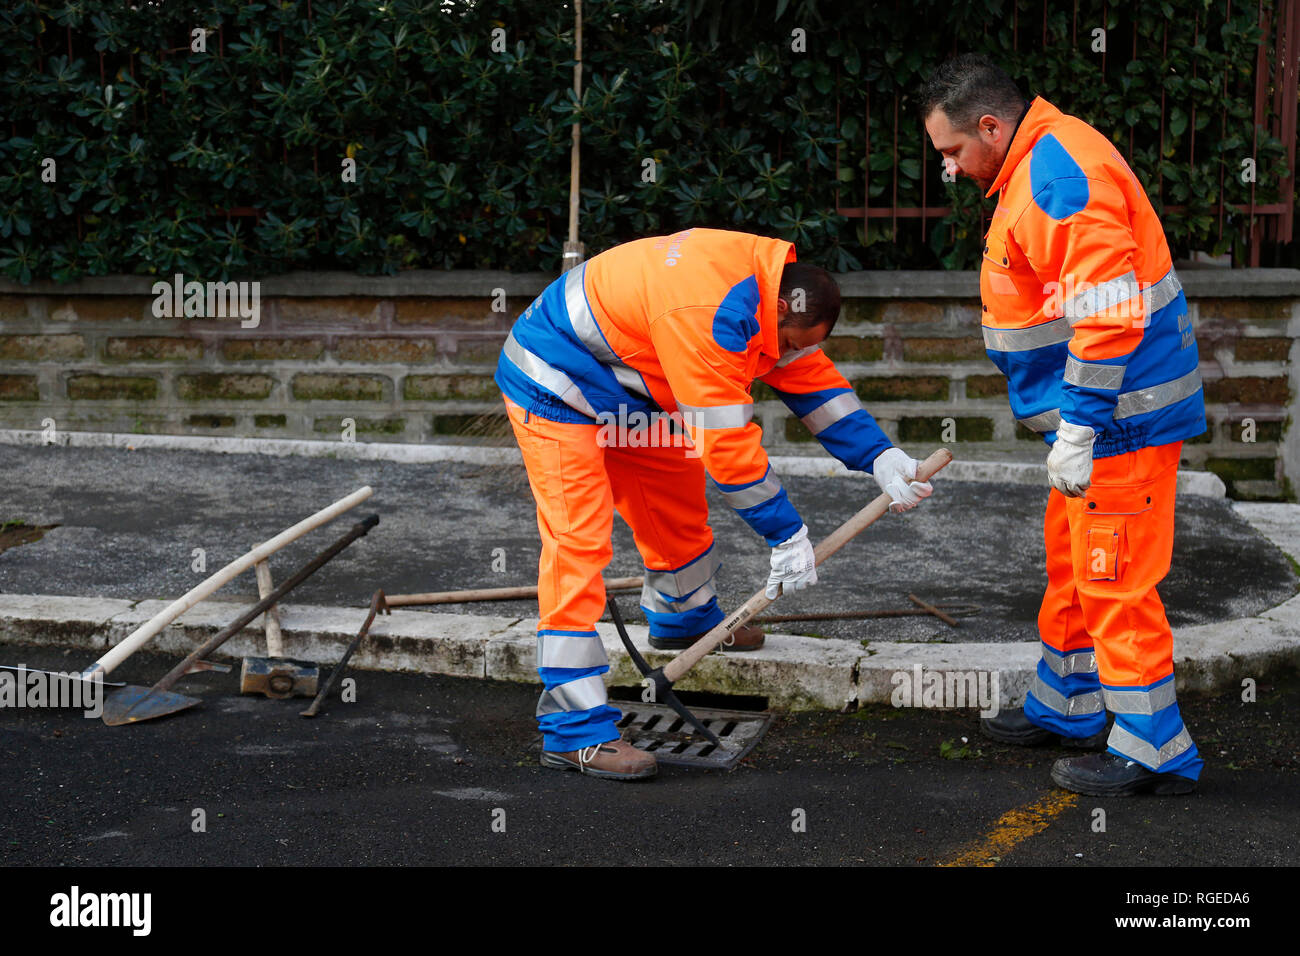 Rome January 29th 2019. Detainees from Rome jail Rebibbia working for the rebuilding of the road surface, cleaning of manholes and painting of the horizontal signs, within a program of rehabilitation. Foto Samantha Zucchi Insidefoto - Stock Image